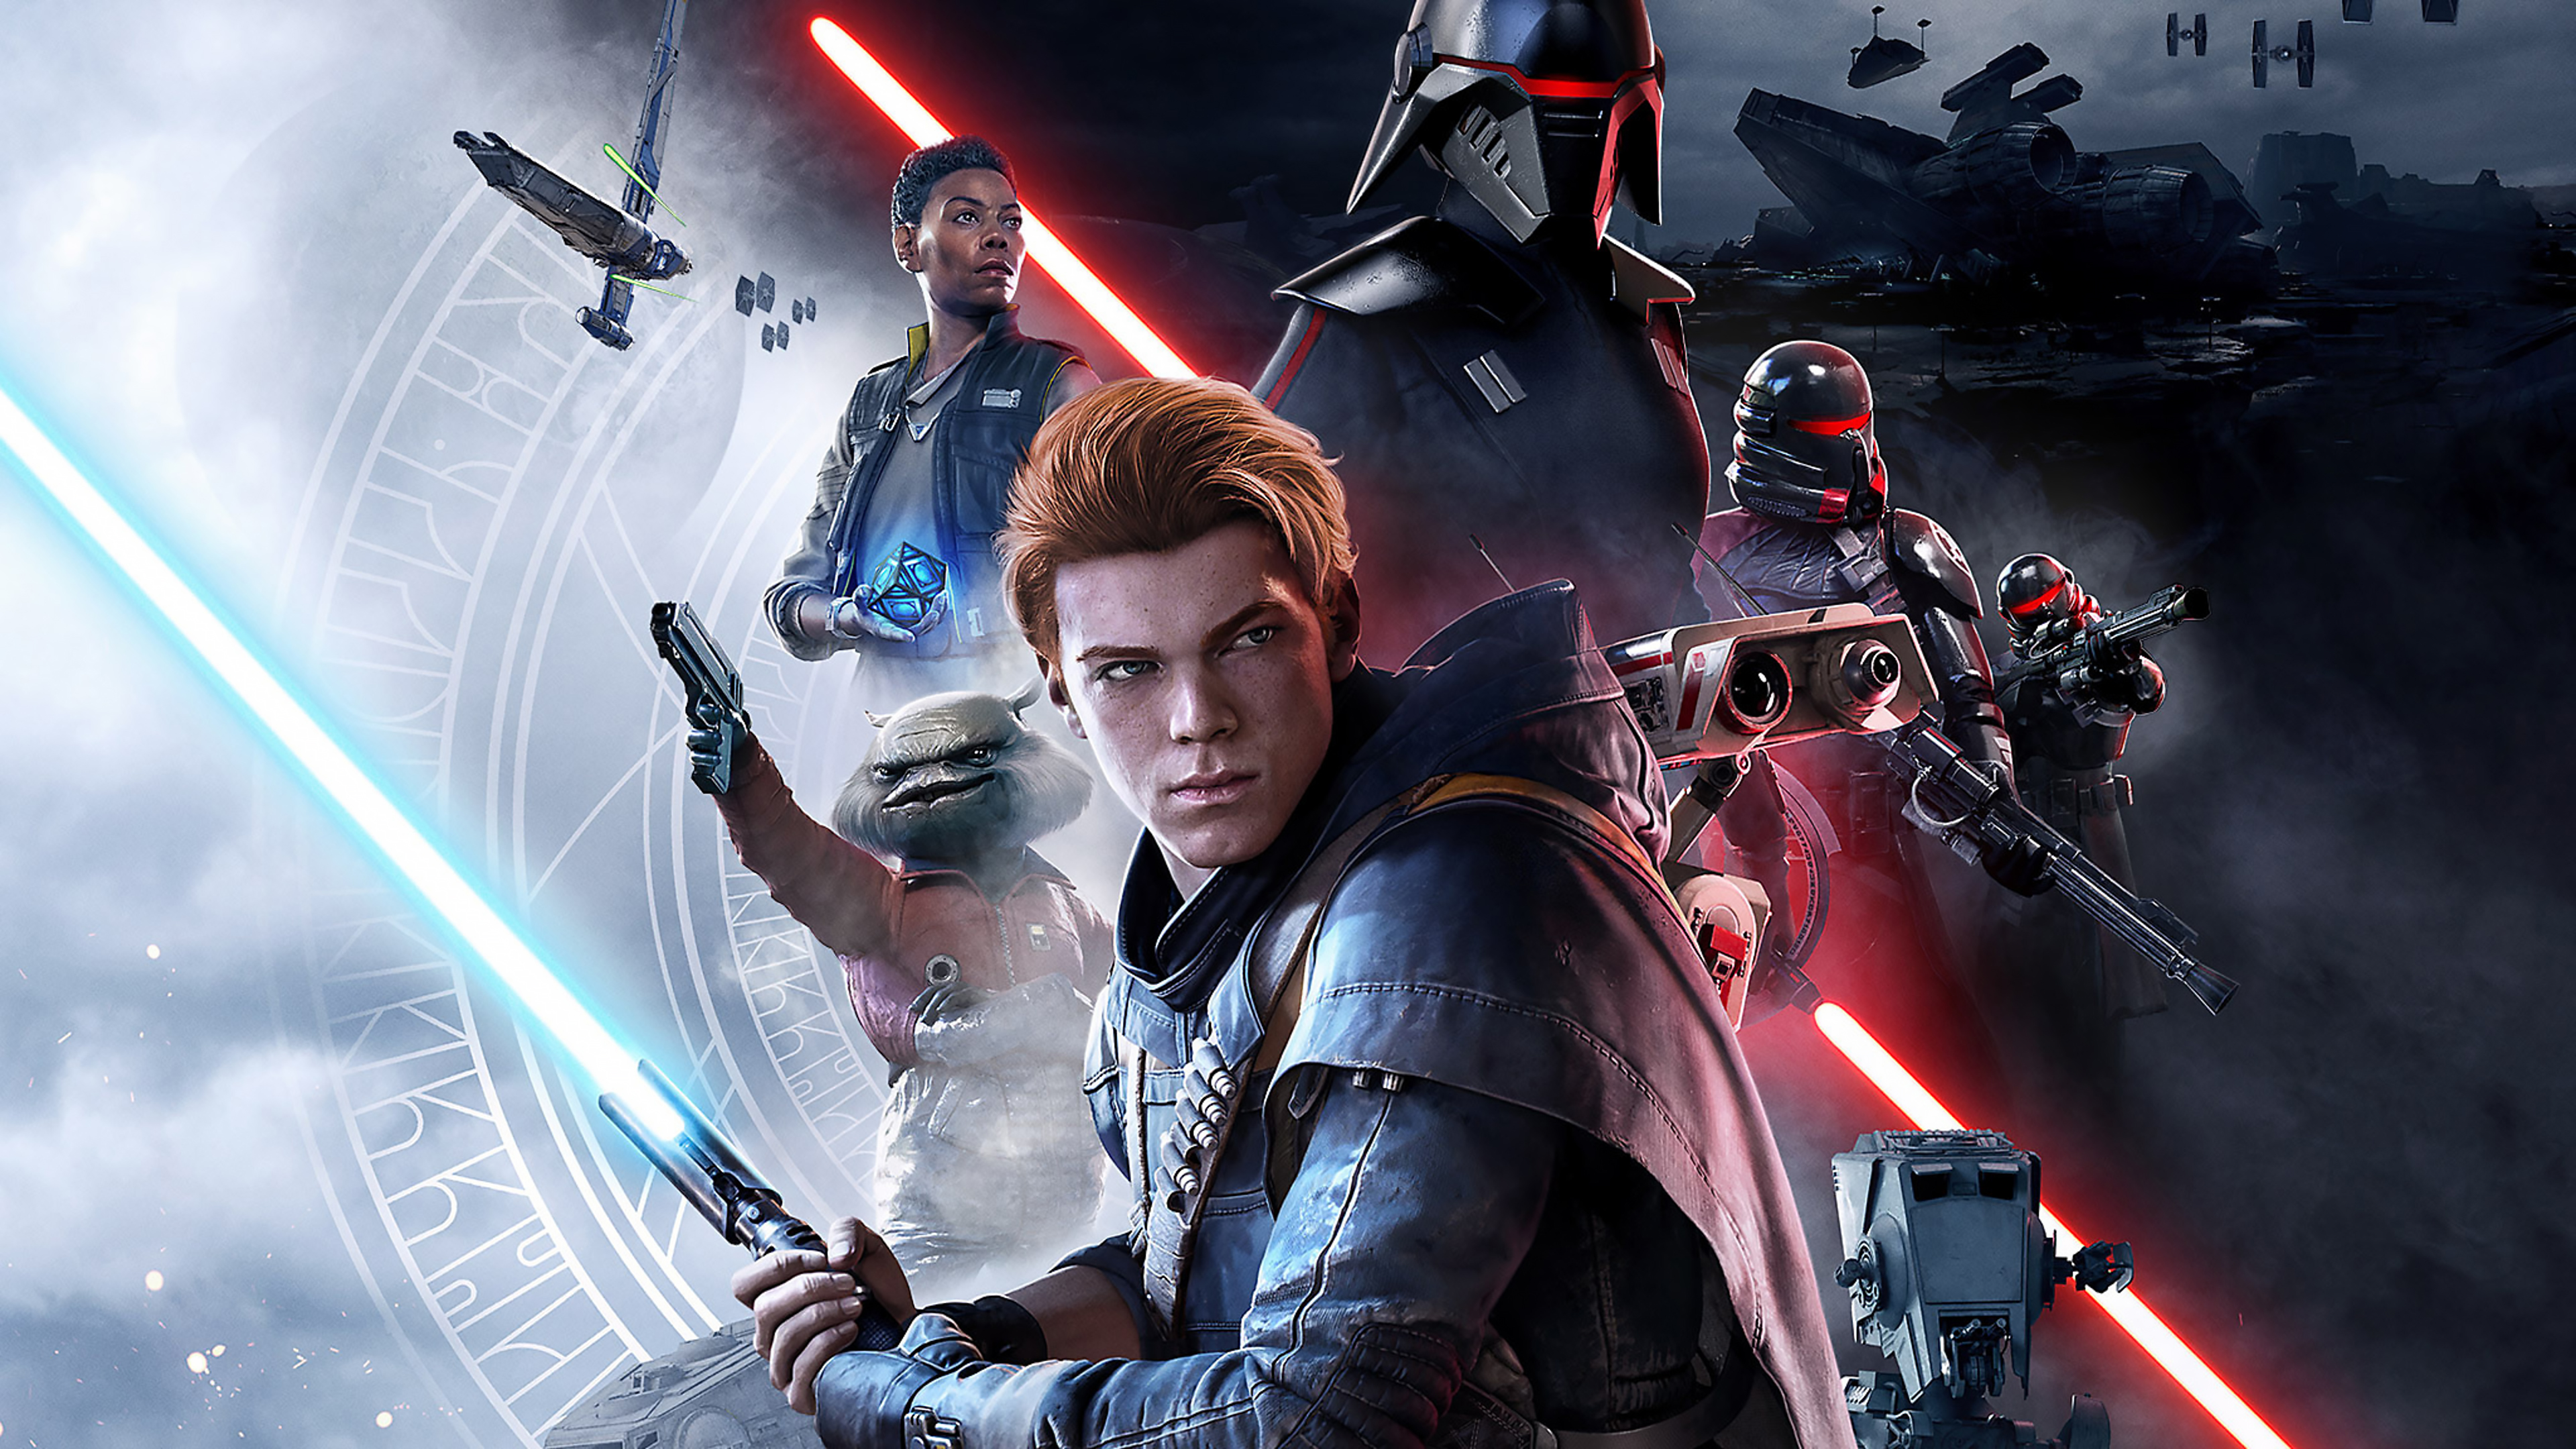 Wallpaper Star Wars Jedi Fallen Order Game